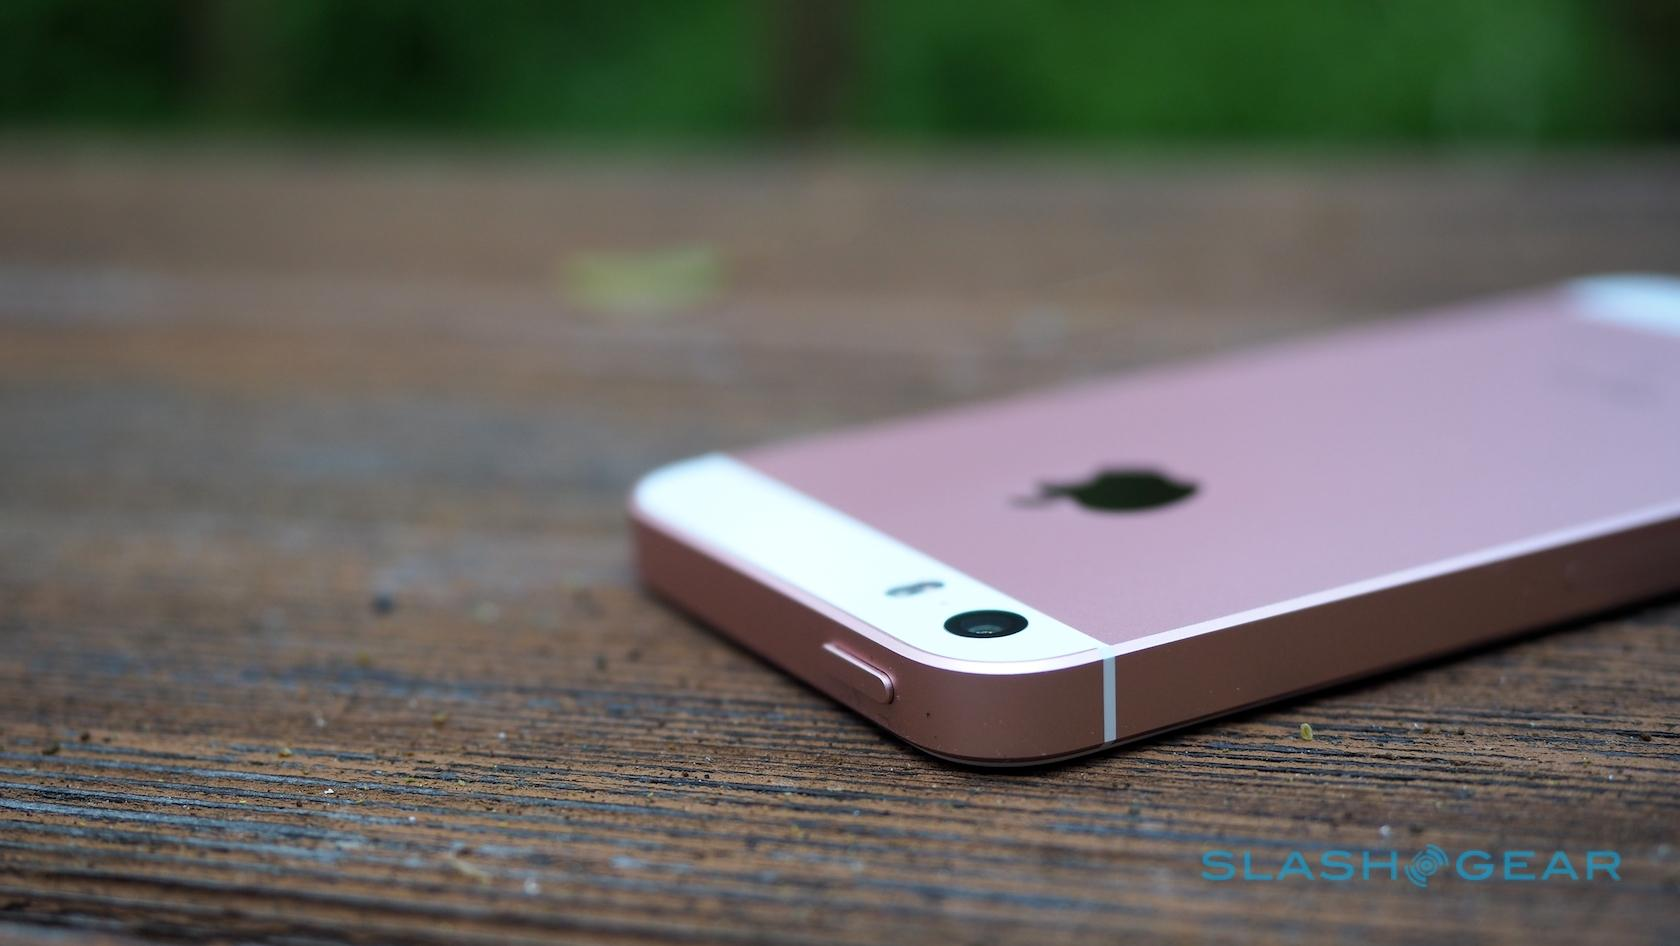 New lowest-cost iPhone release date potential: 4G or 5G? - SlashGear